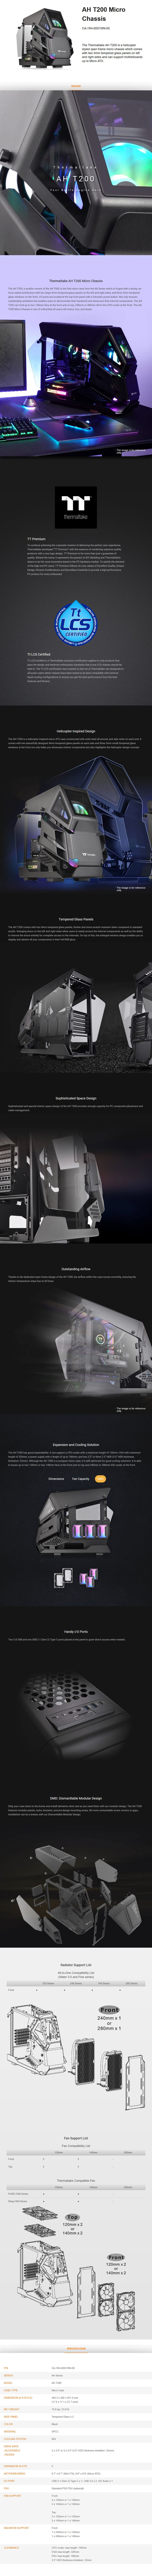 Thermaltake AH T200 Tempered Glass Micro-ATX Case - Black - Desktop Overview 1